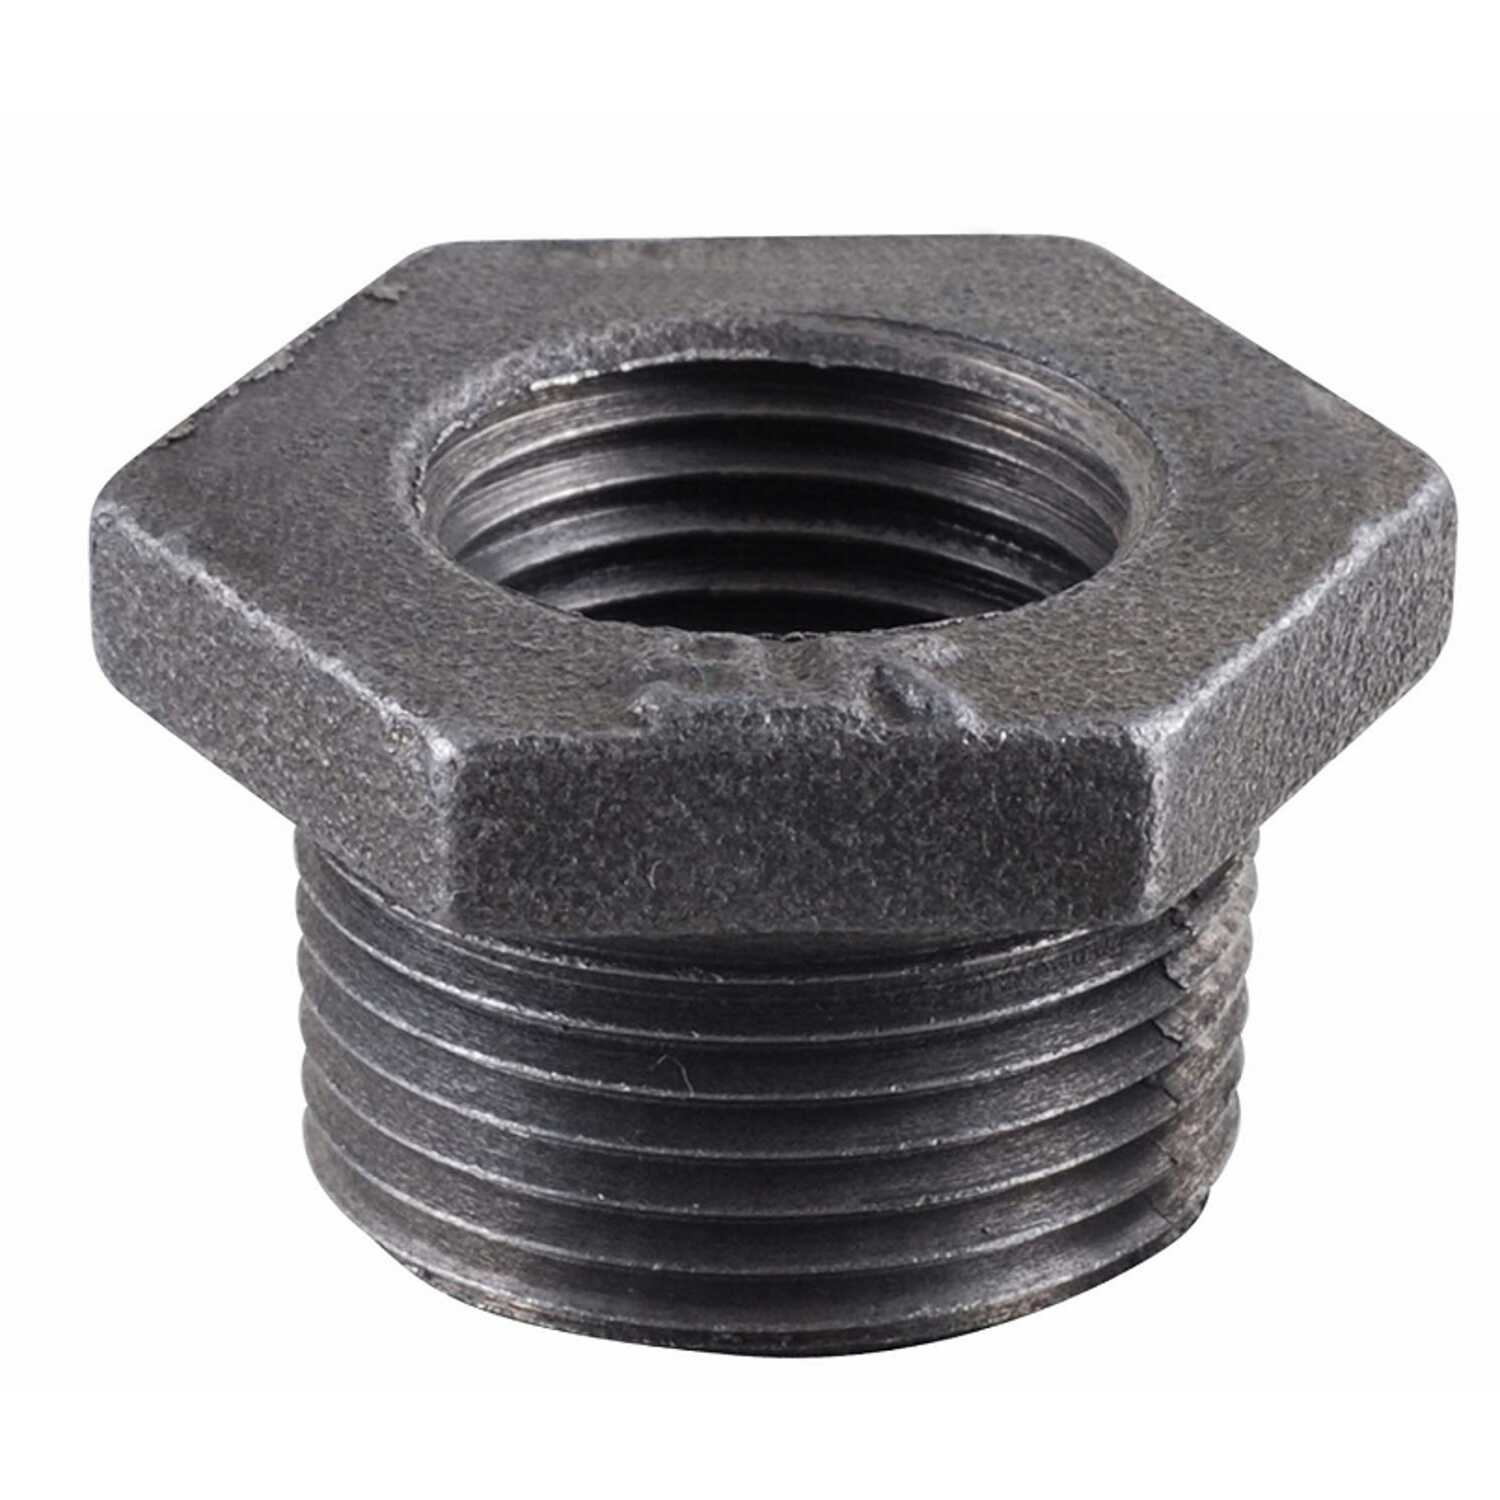 BK Products  1-1/4 in. MPT   x 3/4 in. Dia. FPT  Black  Malleable Iron  Hex Bushing